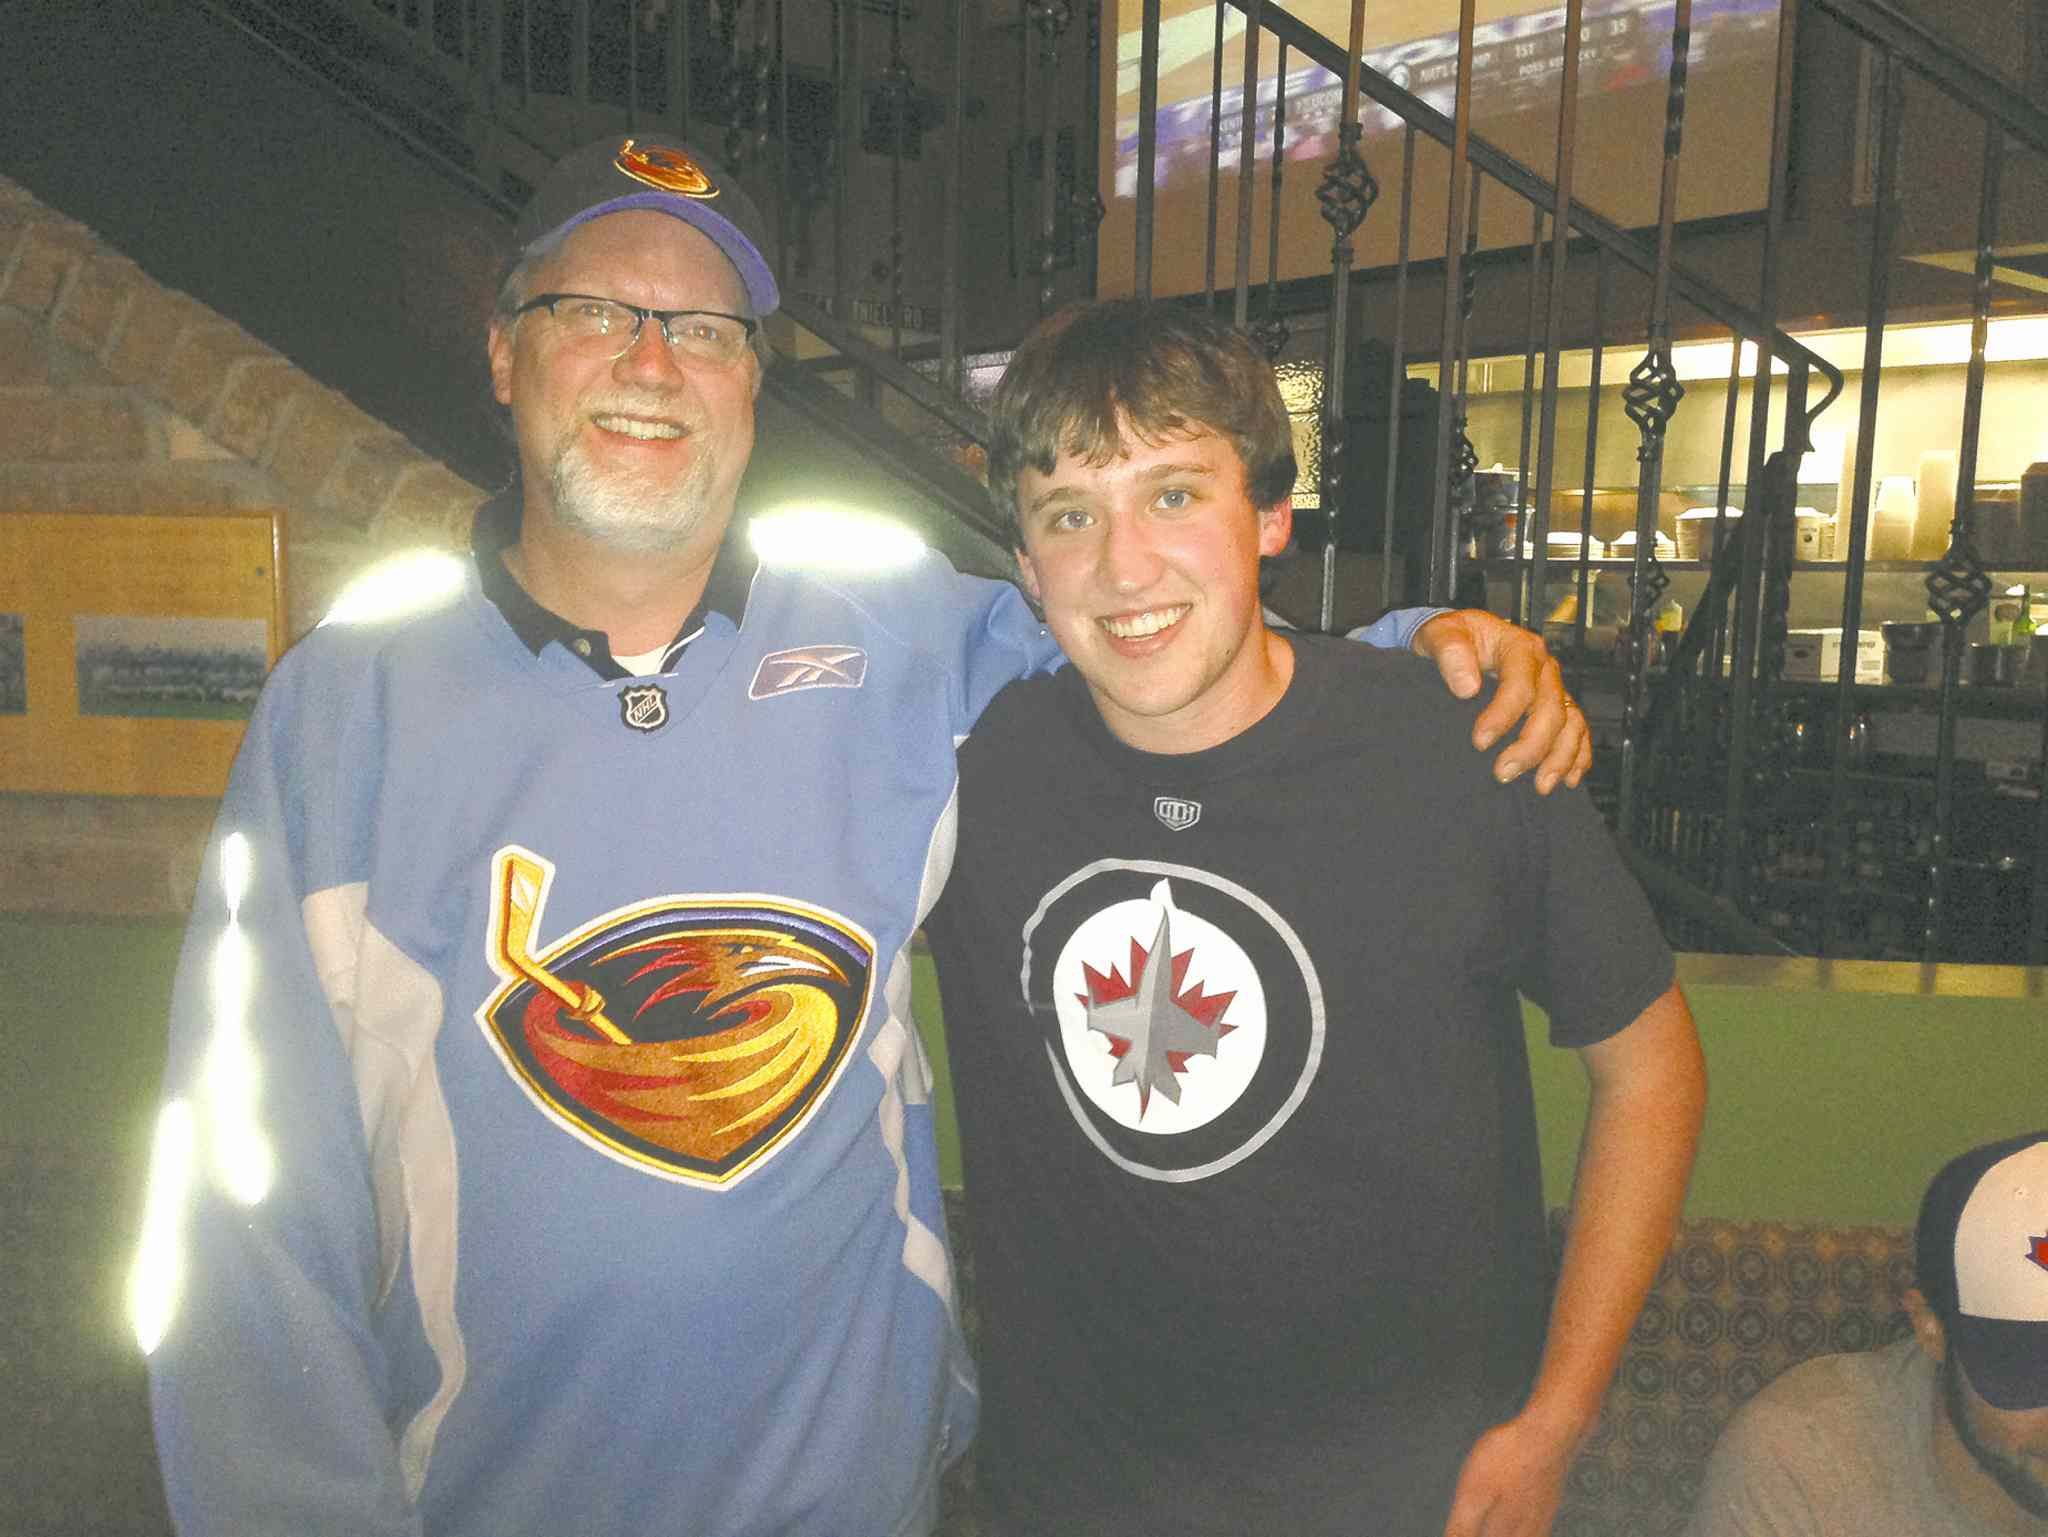 Atlanta resident Todd Cormack is the proud owner of a Thrashers jersey, while Luke Dixon prefers Jets garb.